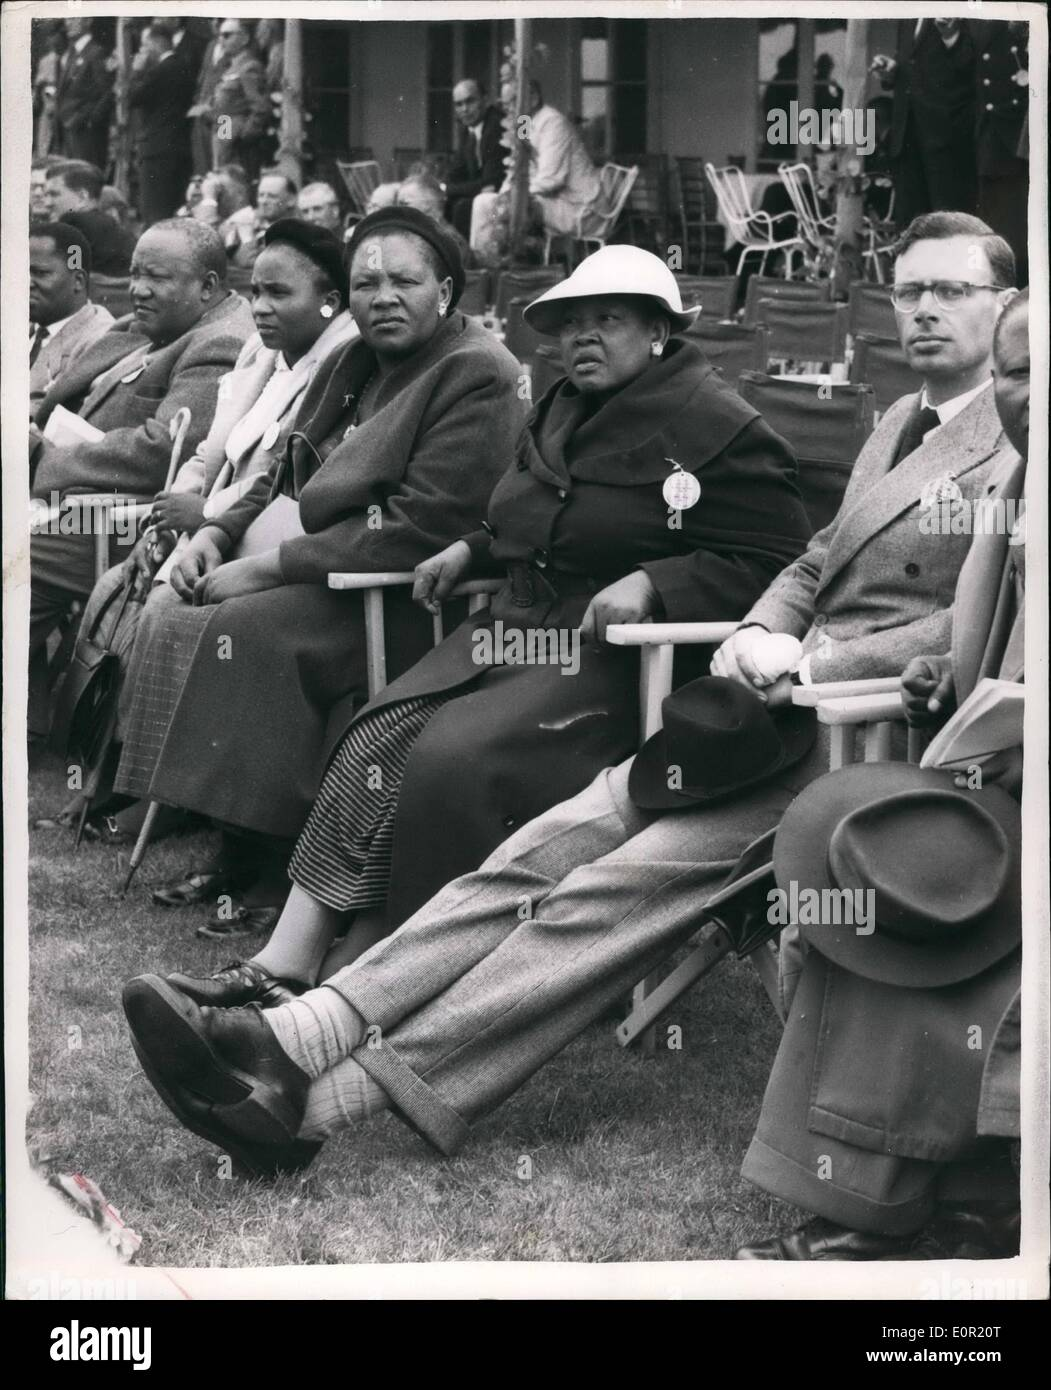 Sep. 09, 1957 - The Farnborough Air Show Basutoland Chieftainess Look On: Representatives from any countries were - Stock Image